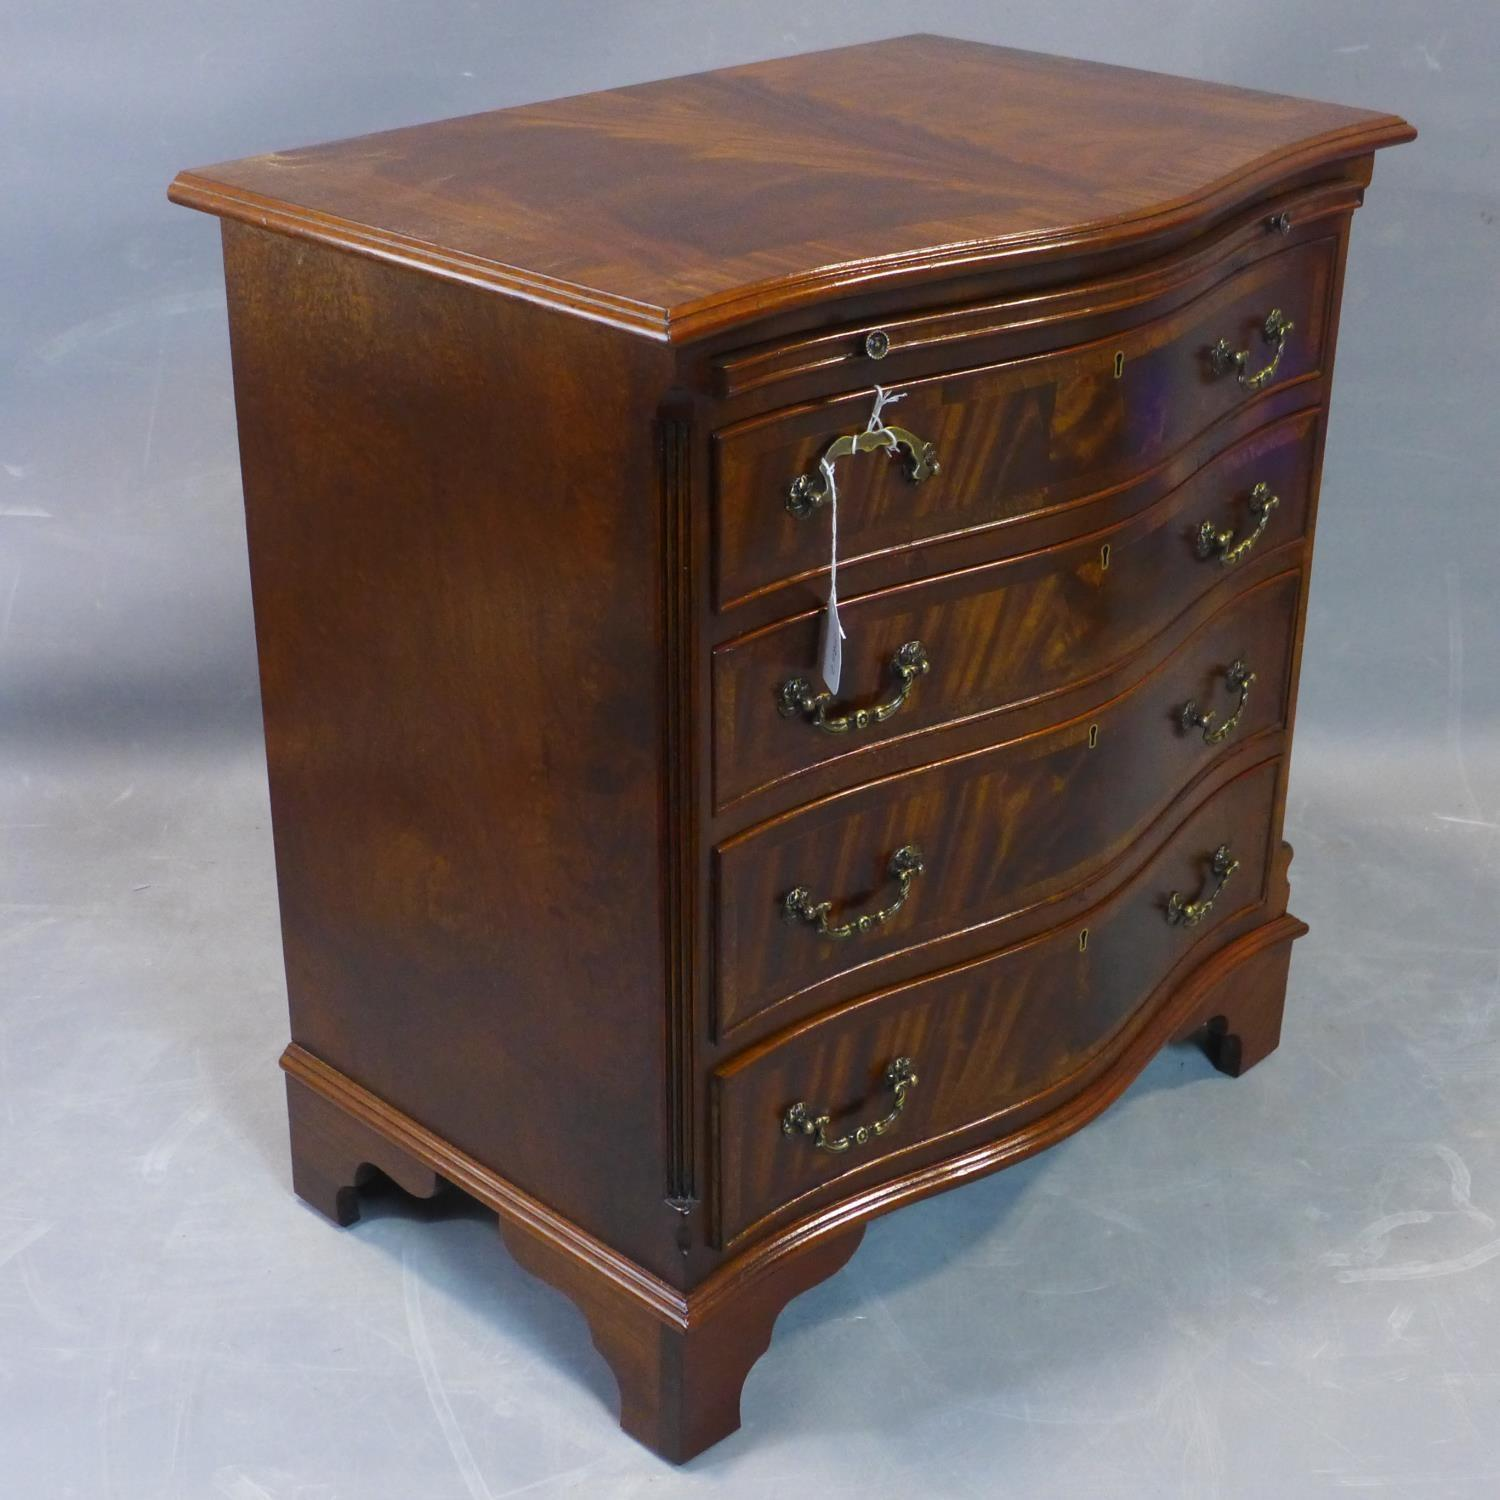 Lot 279 - A serpertine fronted figured mahogany Bachelor's chest, with cross-banded top above brush slide